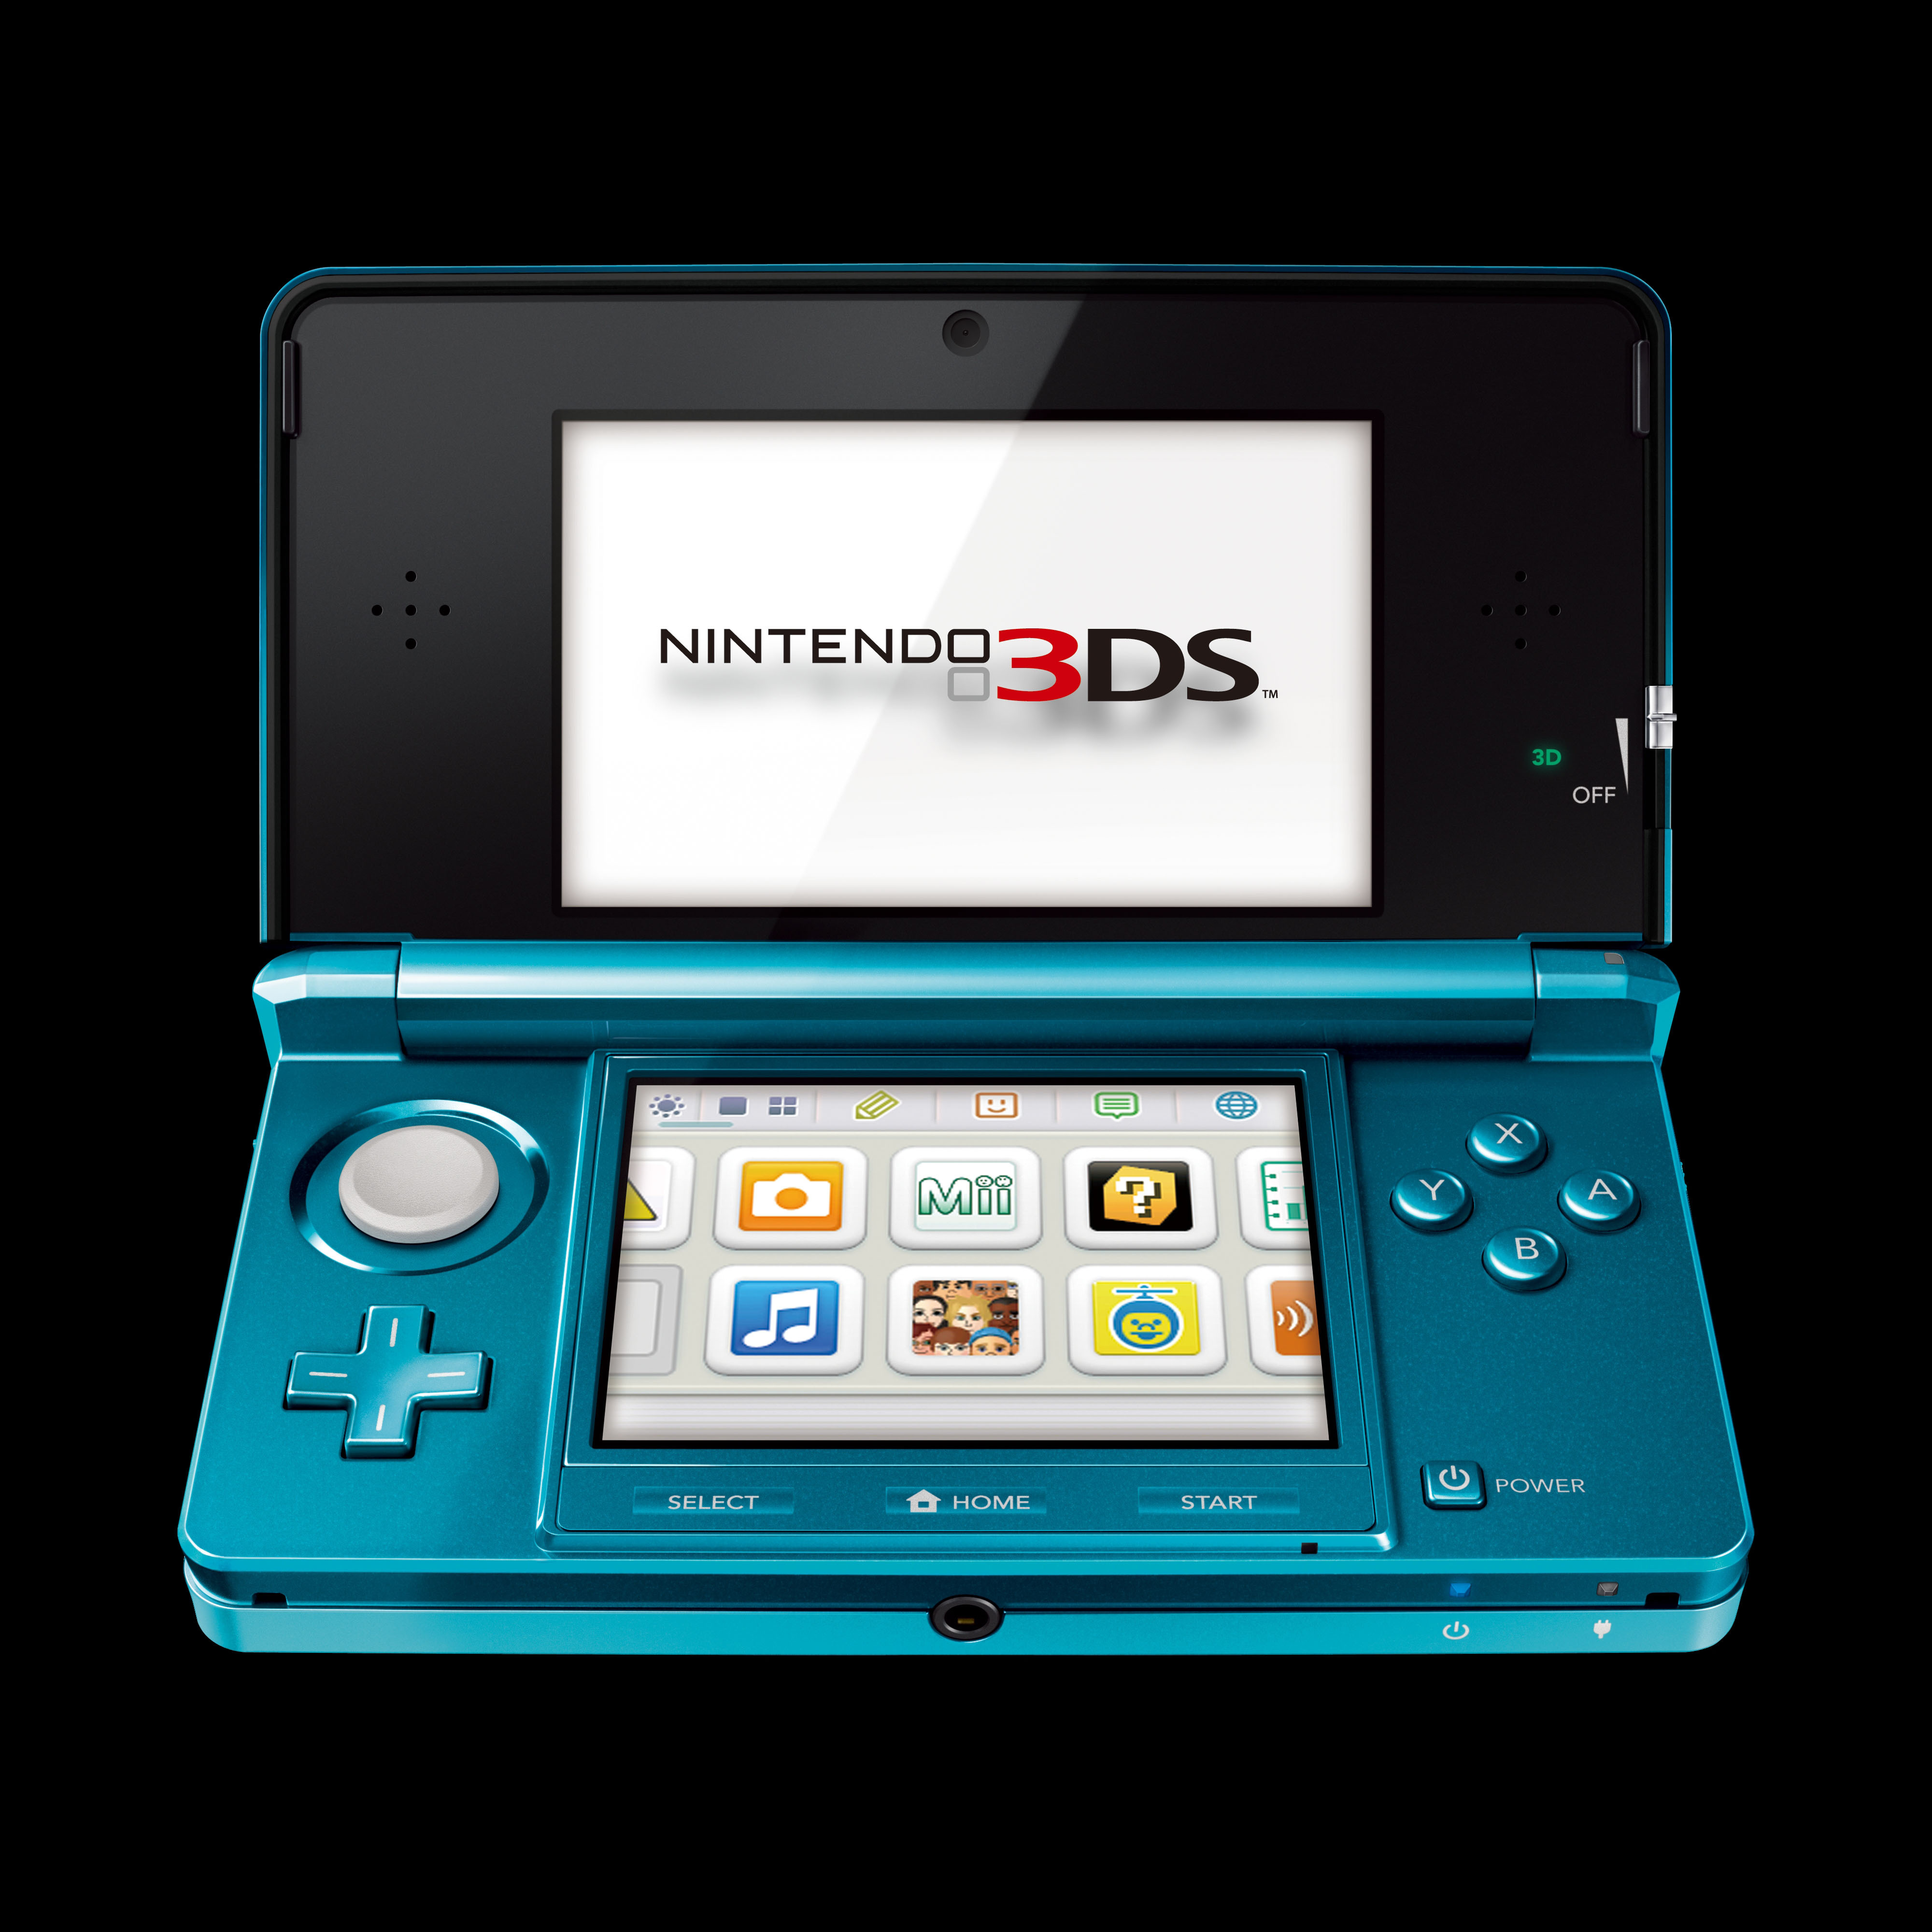 nintendo 3ds changes portable entertainment what 39 s happening tv. Black Bedroom Furniture Sets. Home Design Ideas